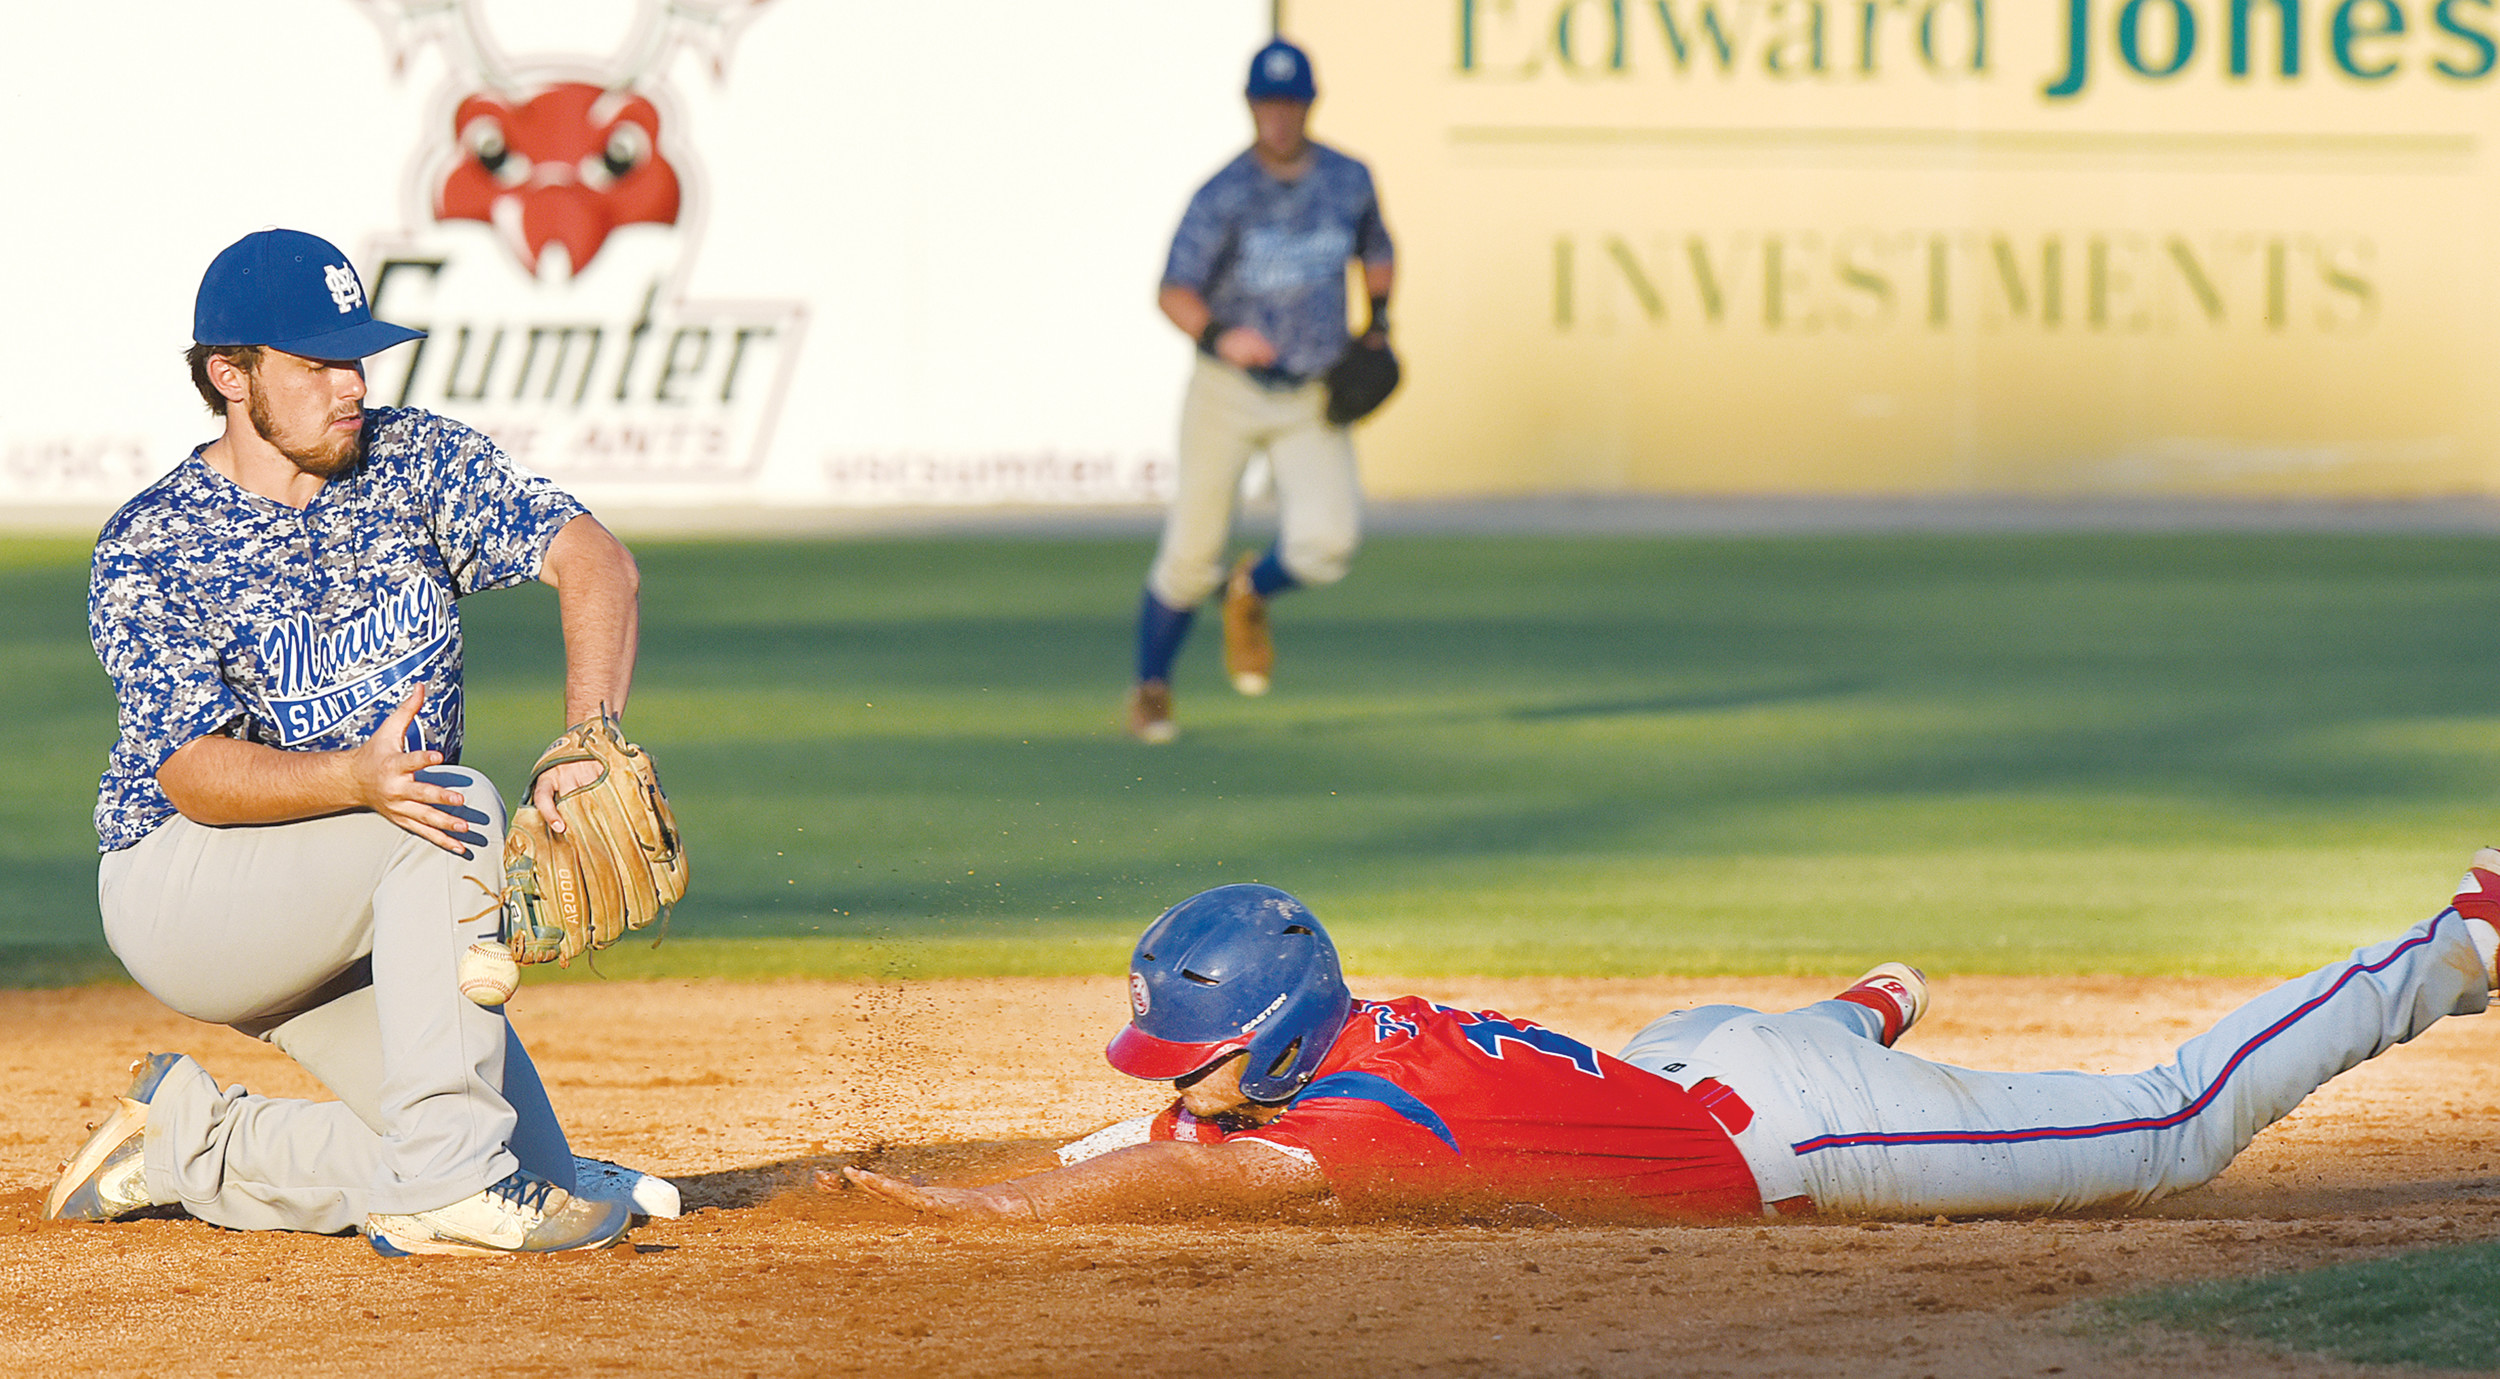 Manning-Santee second baseman Braydon Osteen, left, tries to hang onto the ball as Sumter's Dawson Price safely steals second base during the P-15's 8-1 victory on Monday at Riley Park.